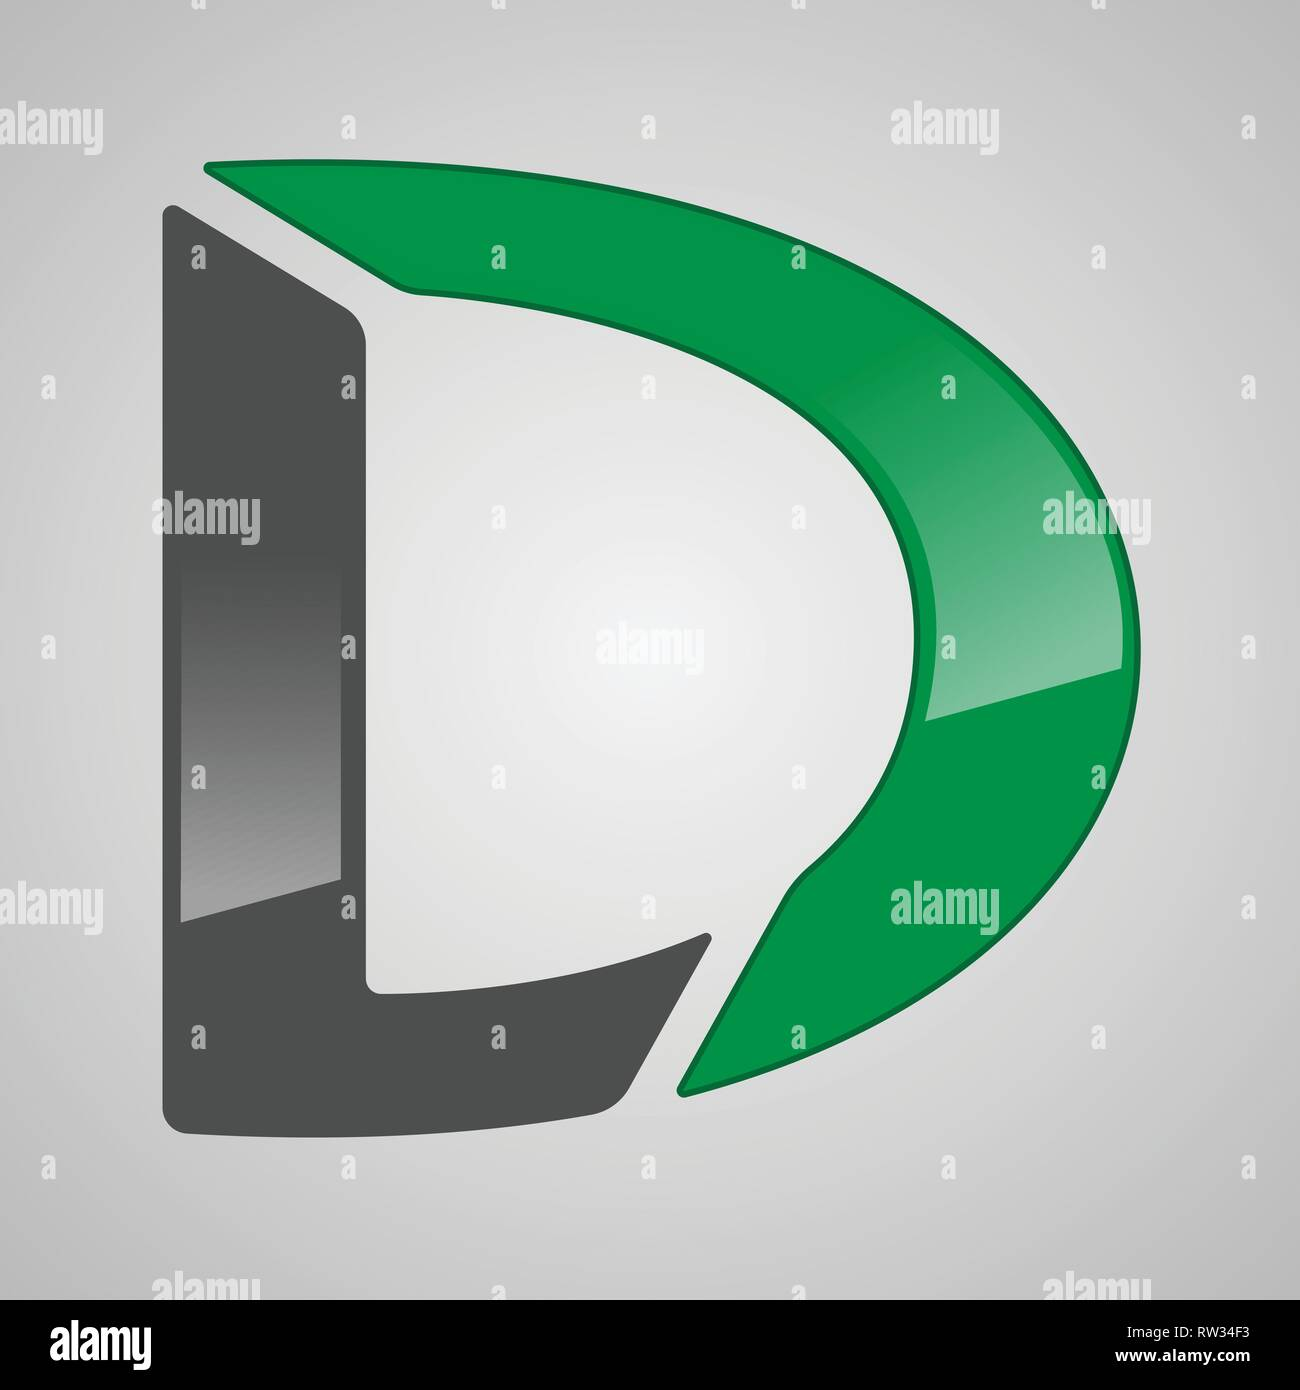 This Logo Has The Letter D The Logo Is Good For Companies